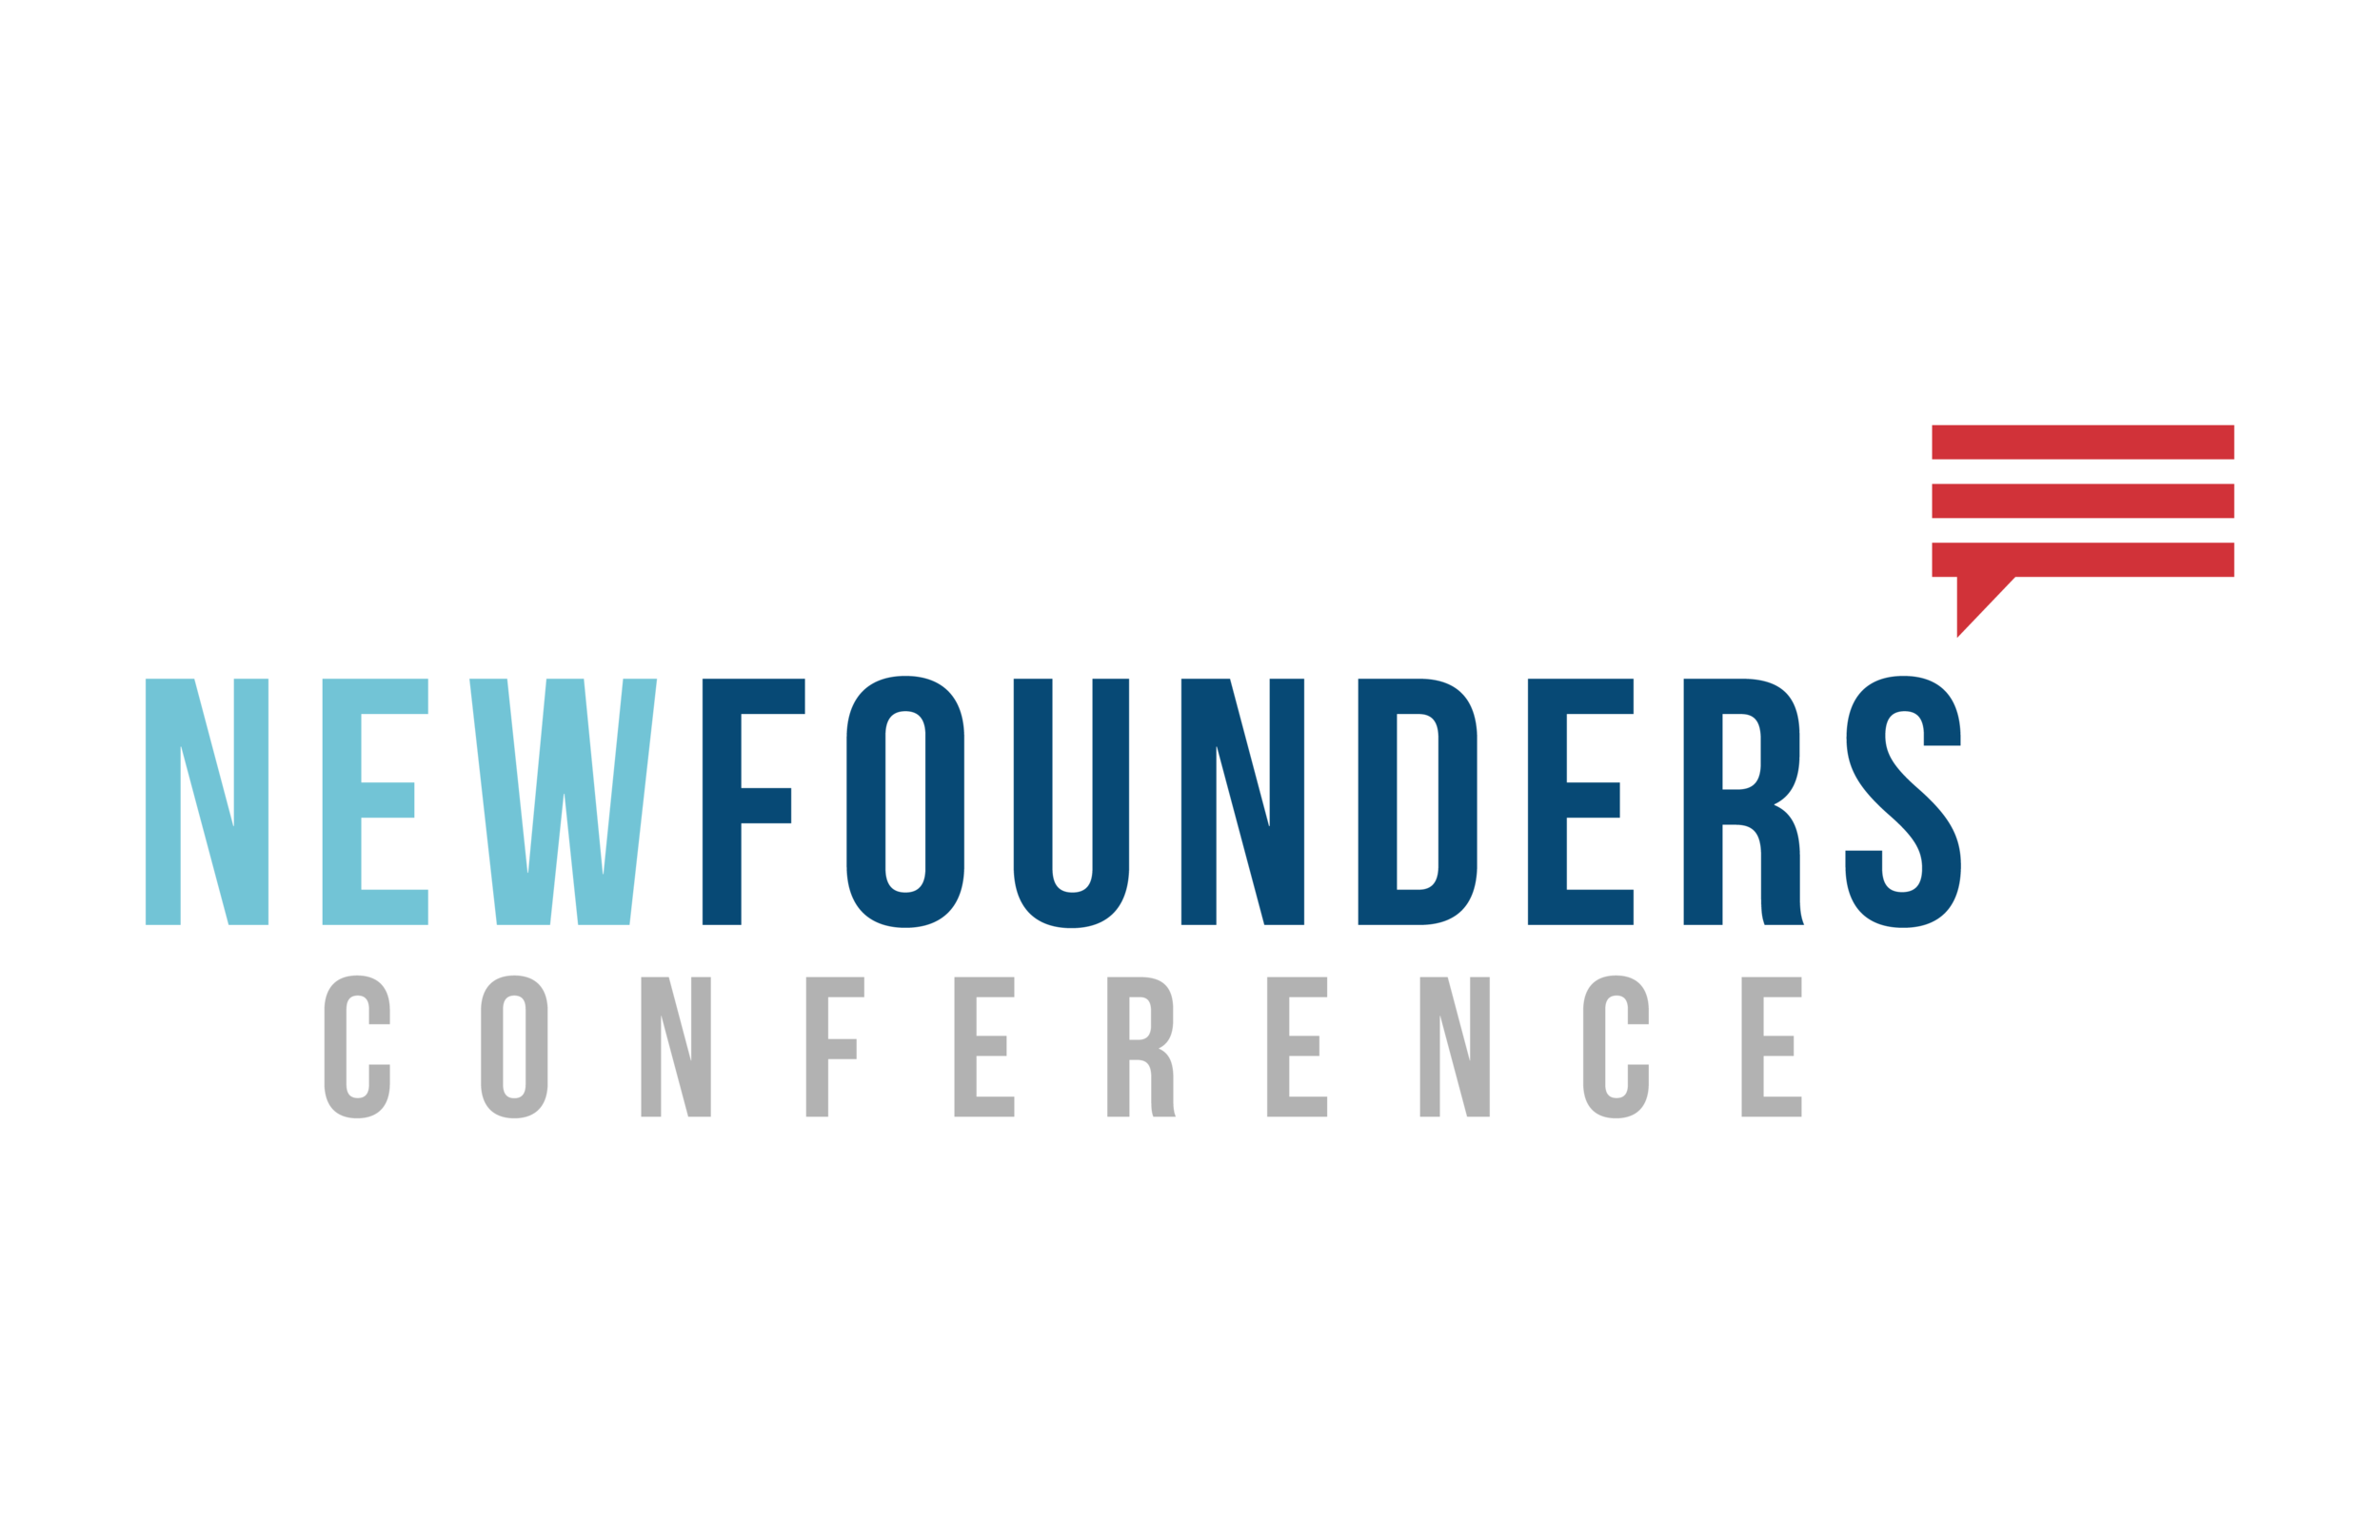 New_Founders_Logo-01.png